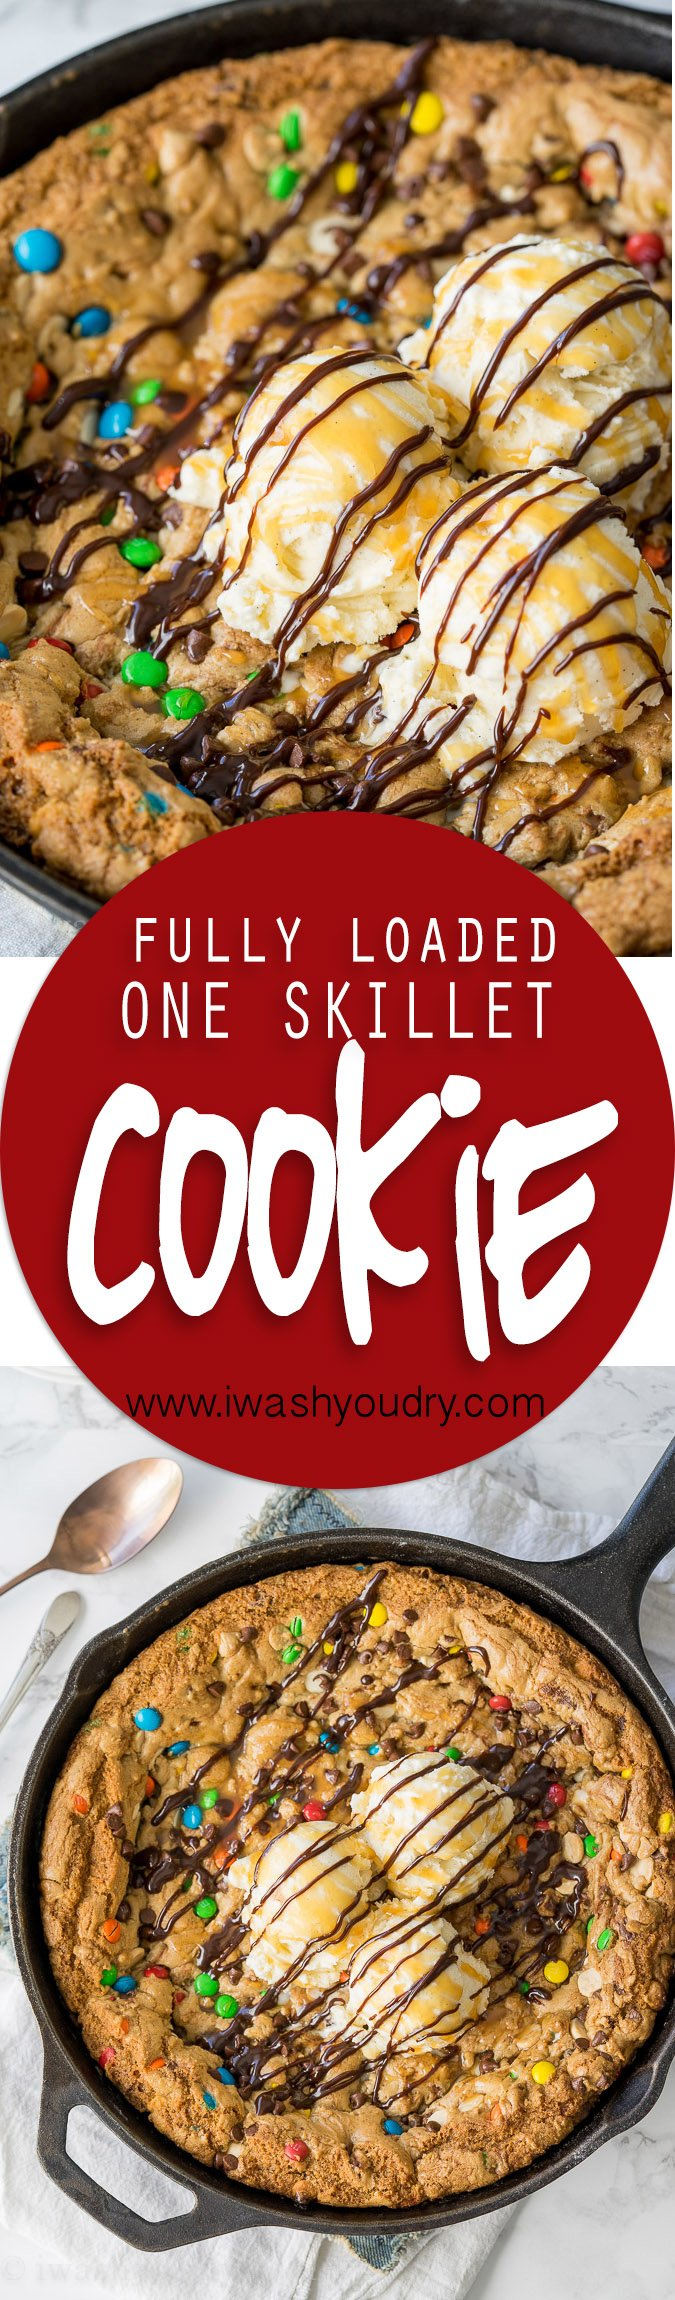 OMG! This One Skillet Fully Loaded Chocolate Chip Cookie recipe is insanely delicious and SUPER EASY to make too! No mixing bowls required for this one!